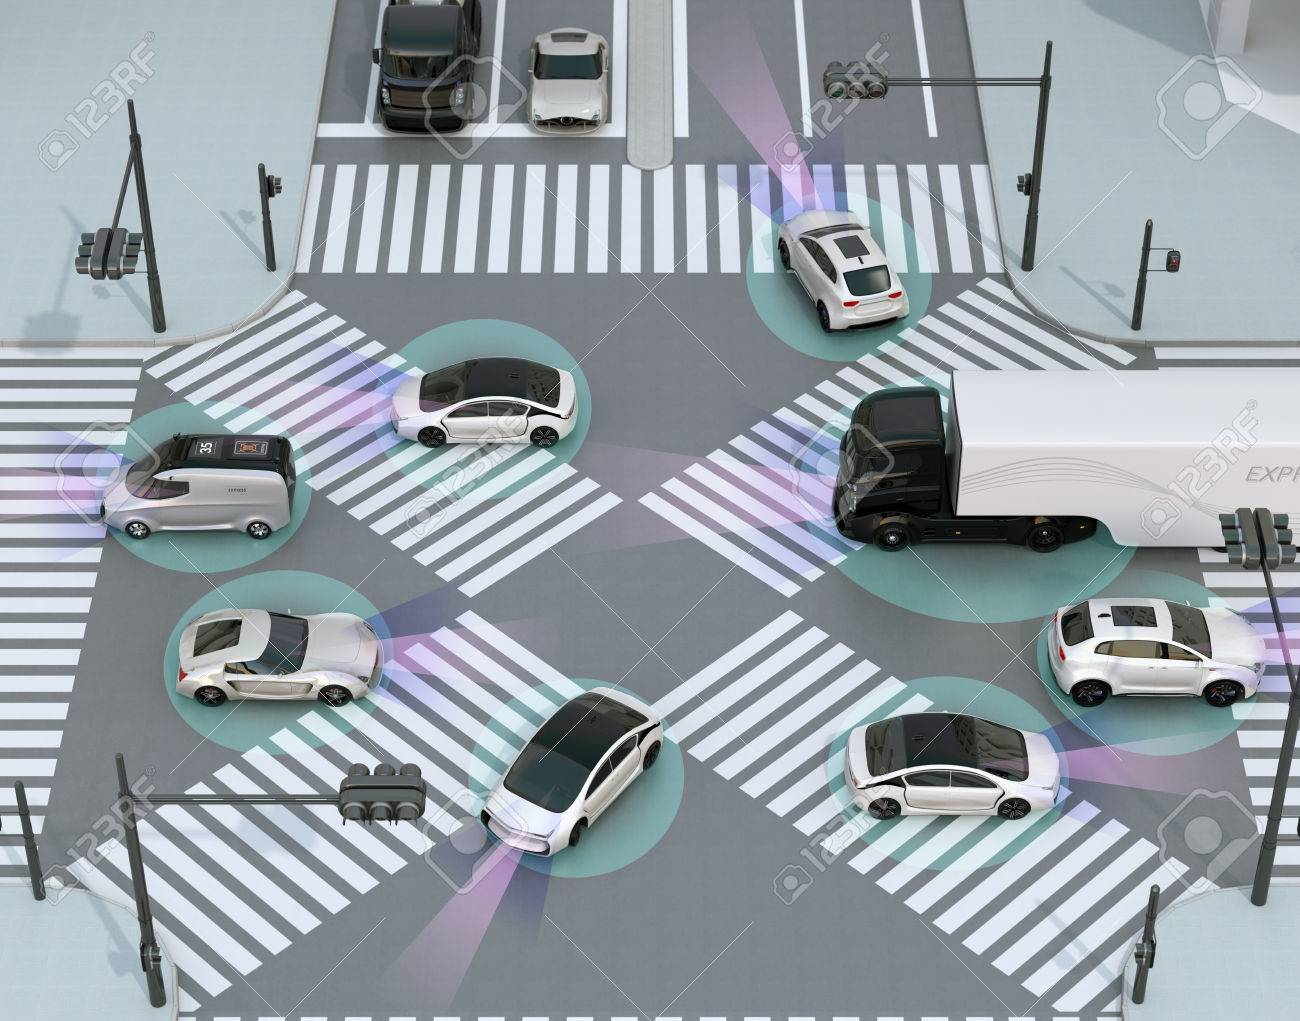 Smooth traffic in crossroad. Concept for advantage autonomous technology. 3D rendering image. - 74538781